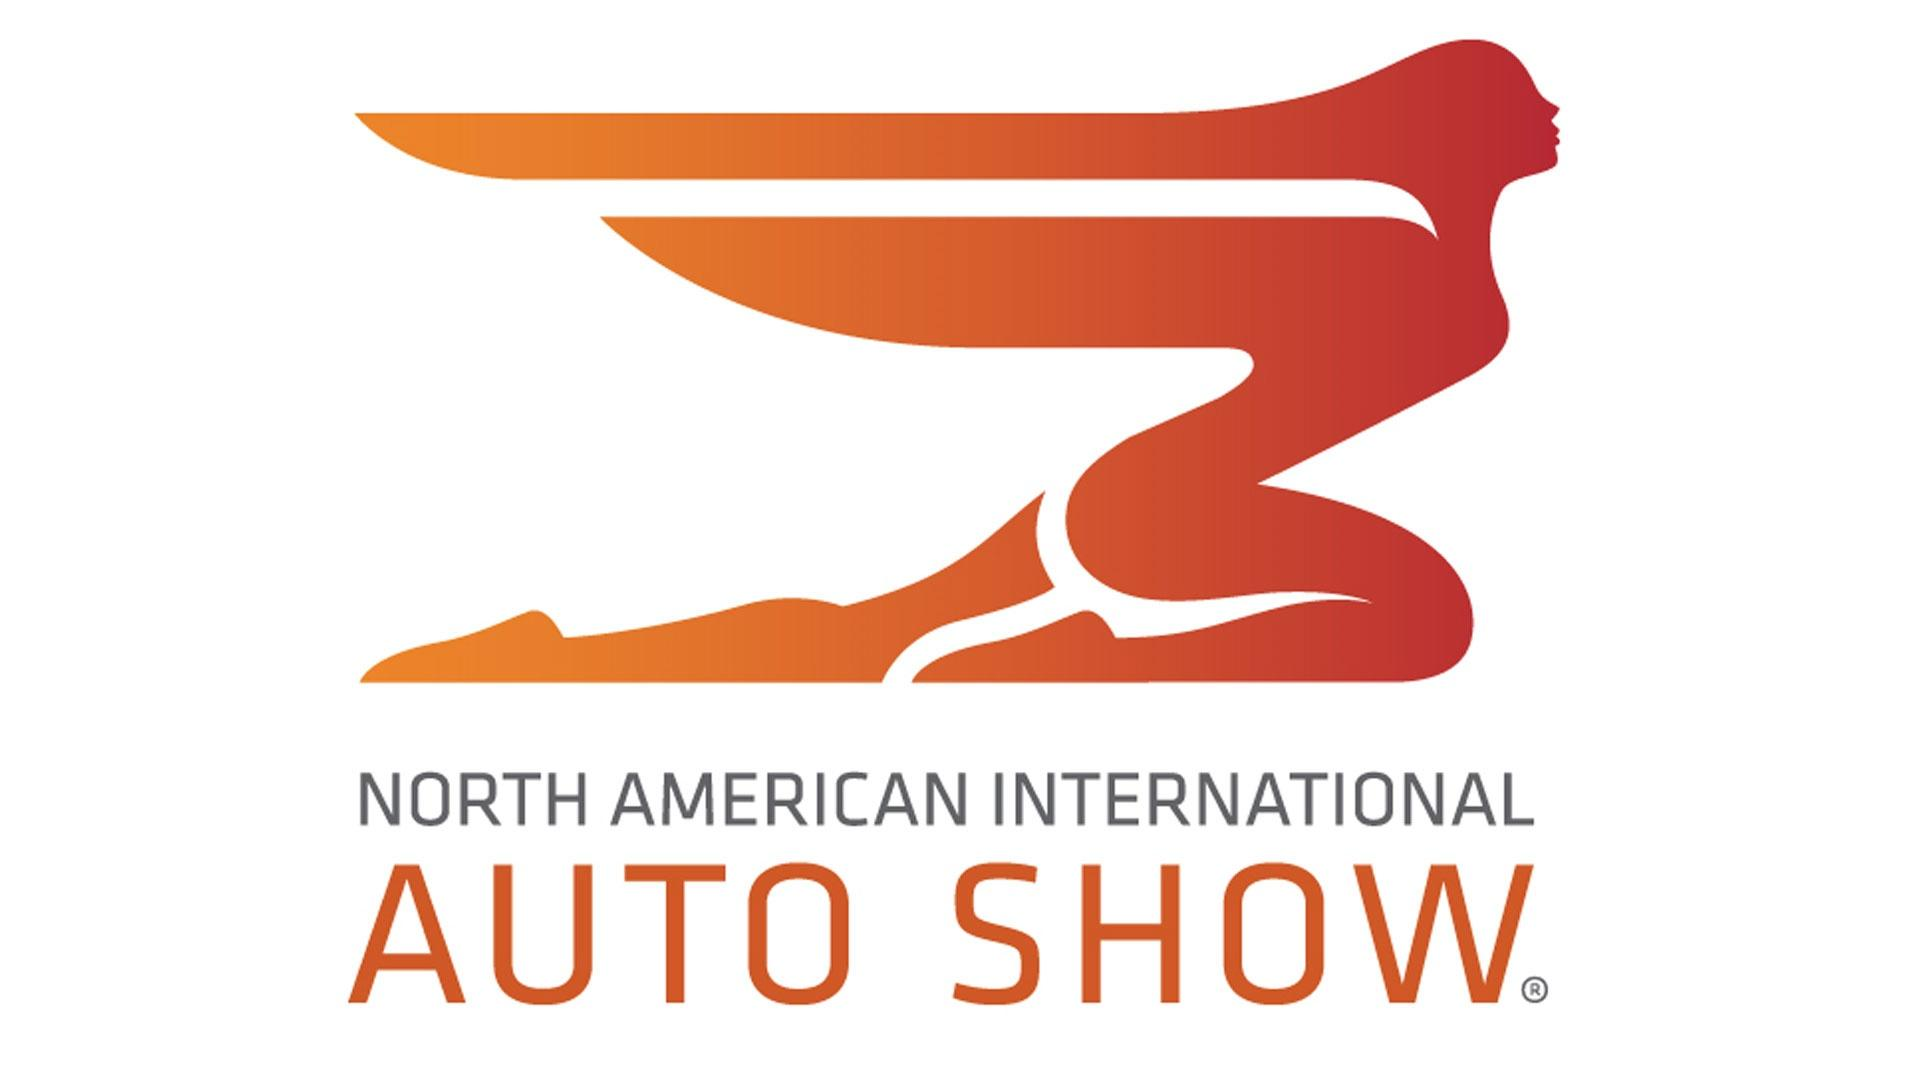 2014 North American International Auto Show image